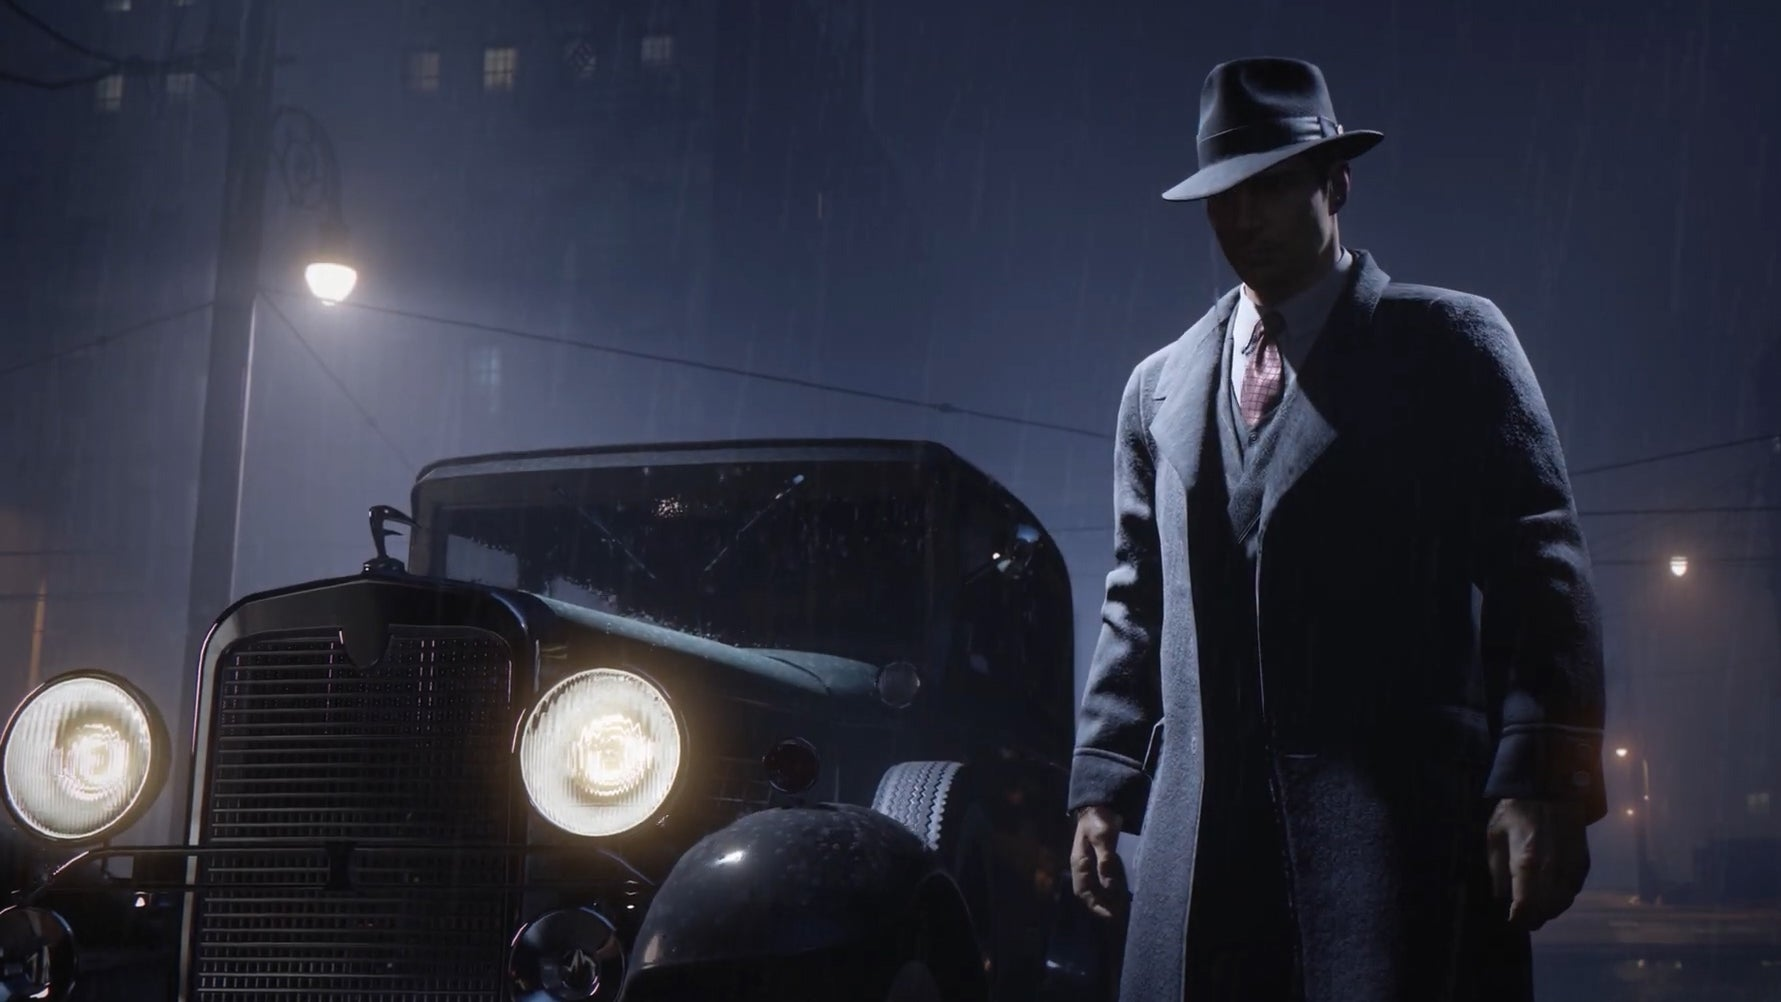 The Mafia Series Is Getting Re-Released As Mafia: Trilogy [Update]